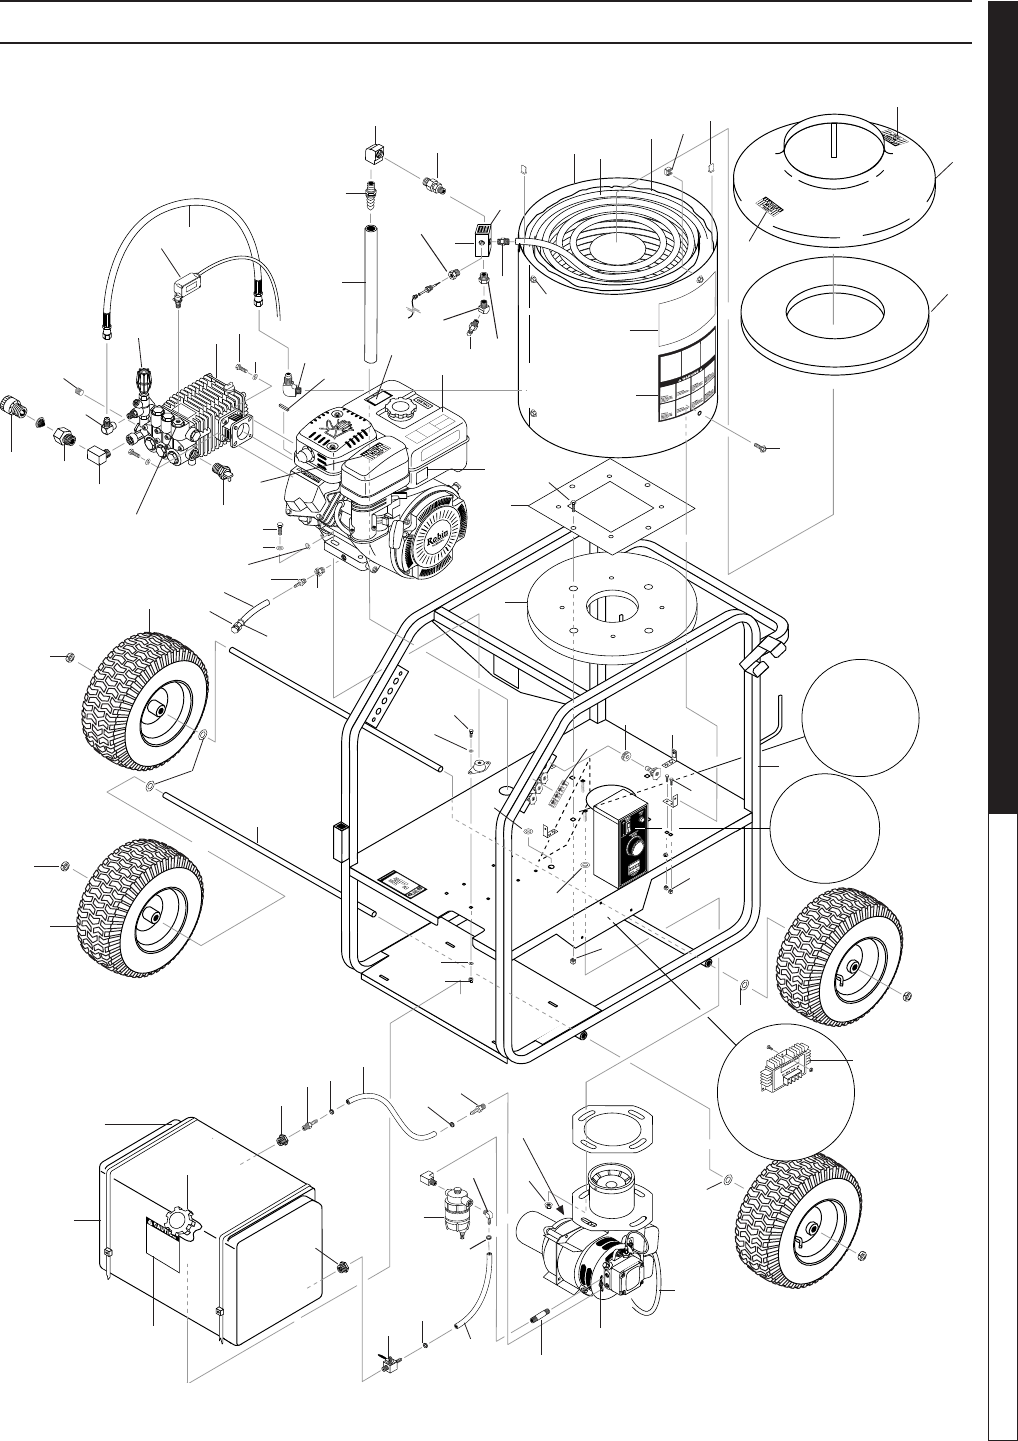 Snap Alpine Mrv F340 Wiring Diagram 30 Images Mrp F300 Shark Sgp 403537e Schematic 34 Diagrams Crackthecode